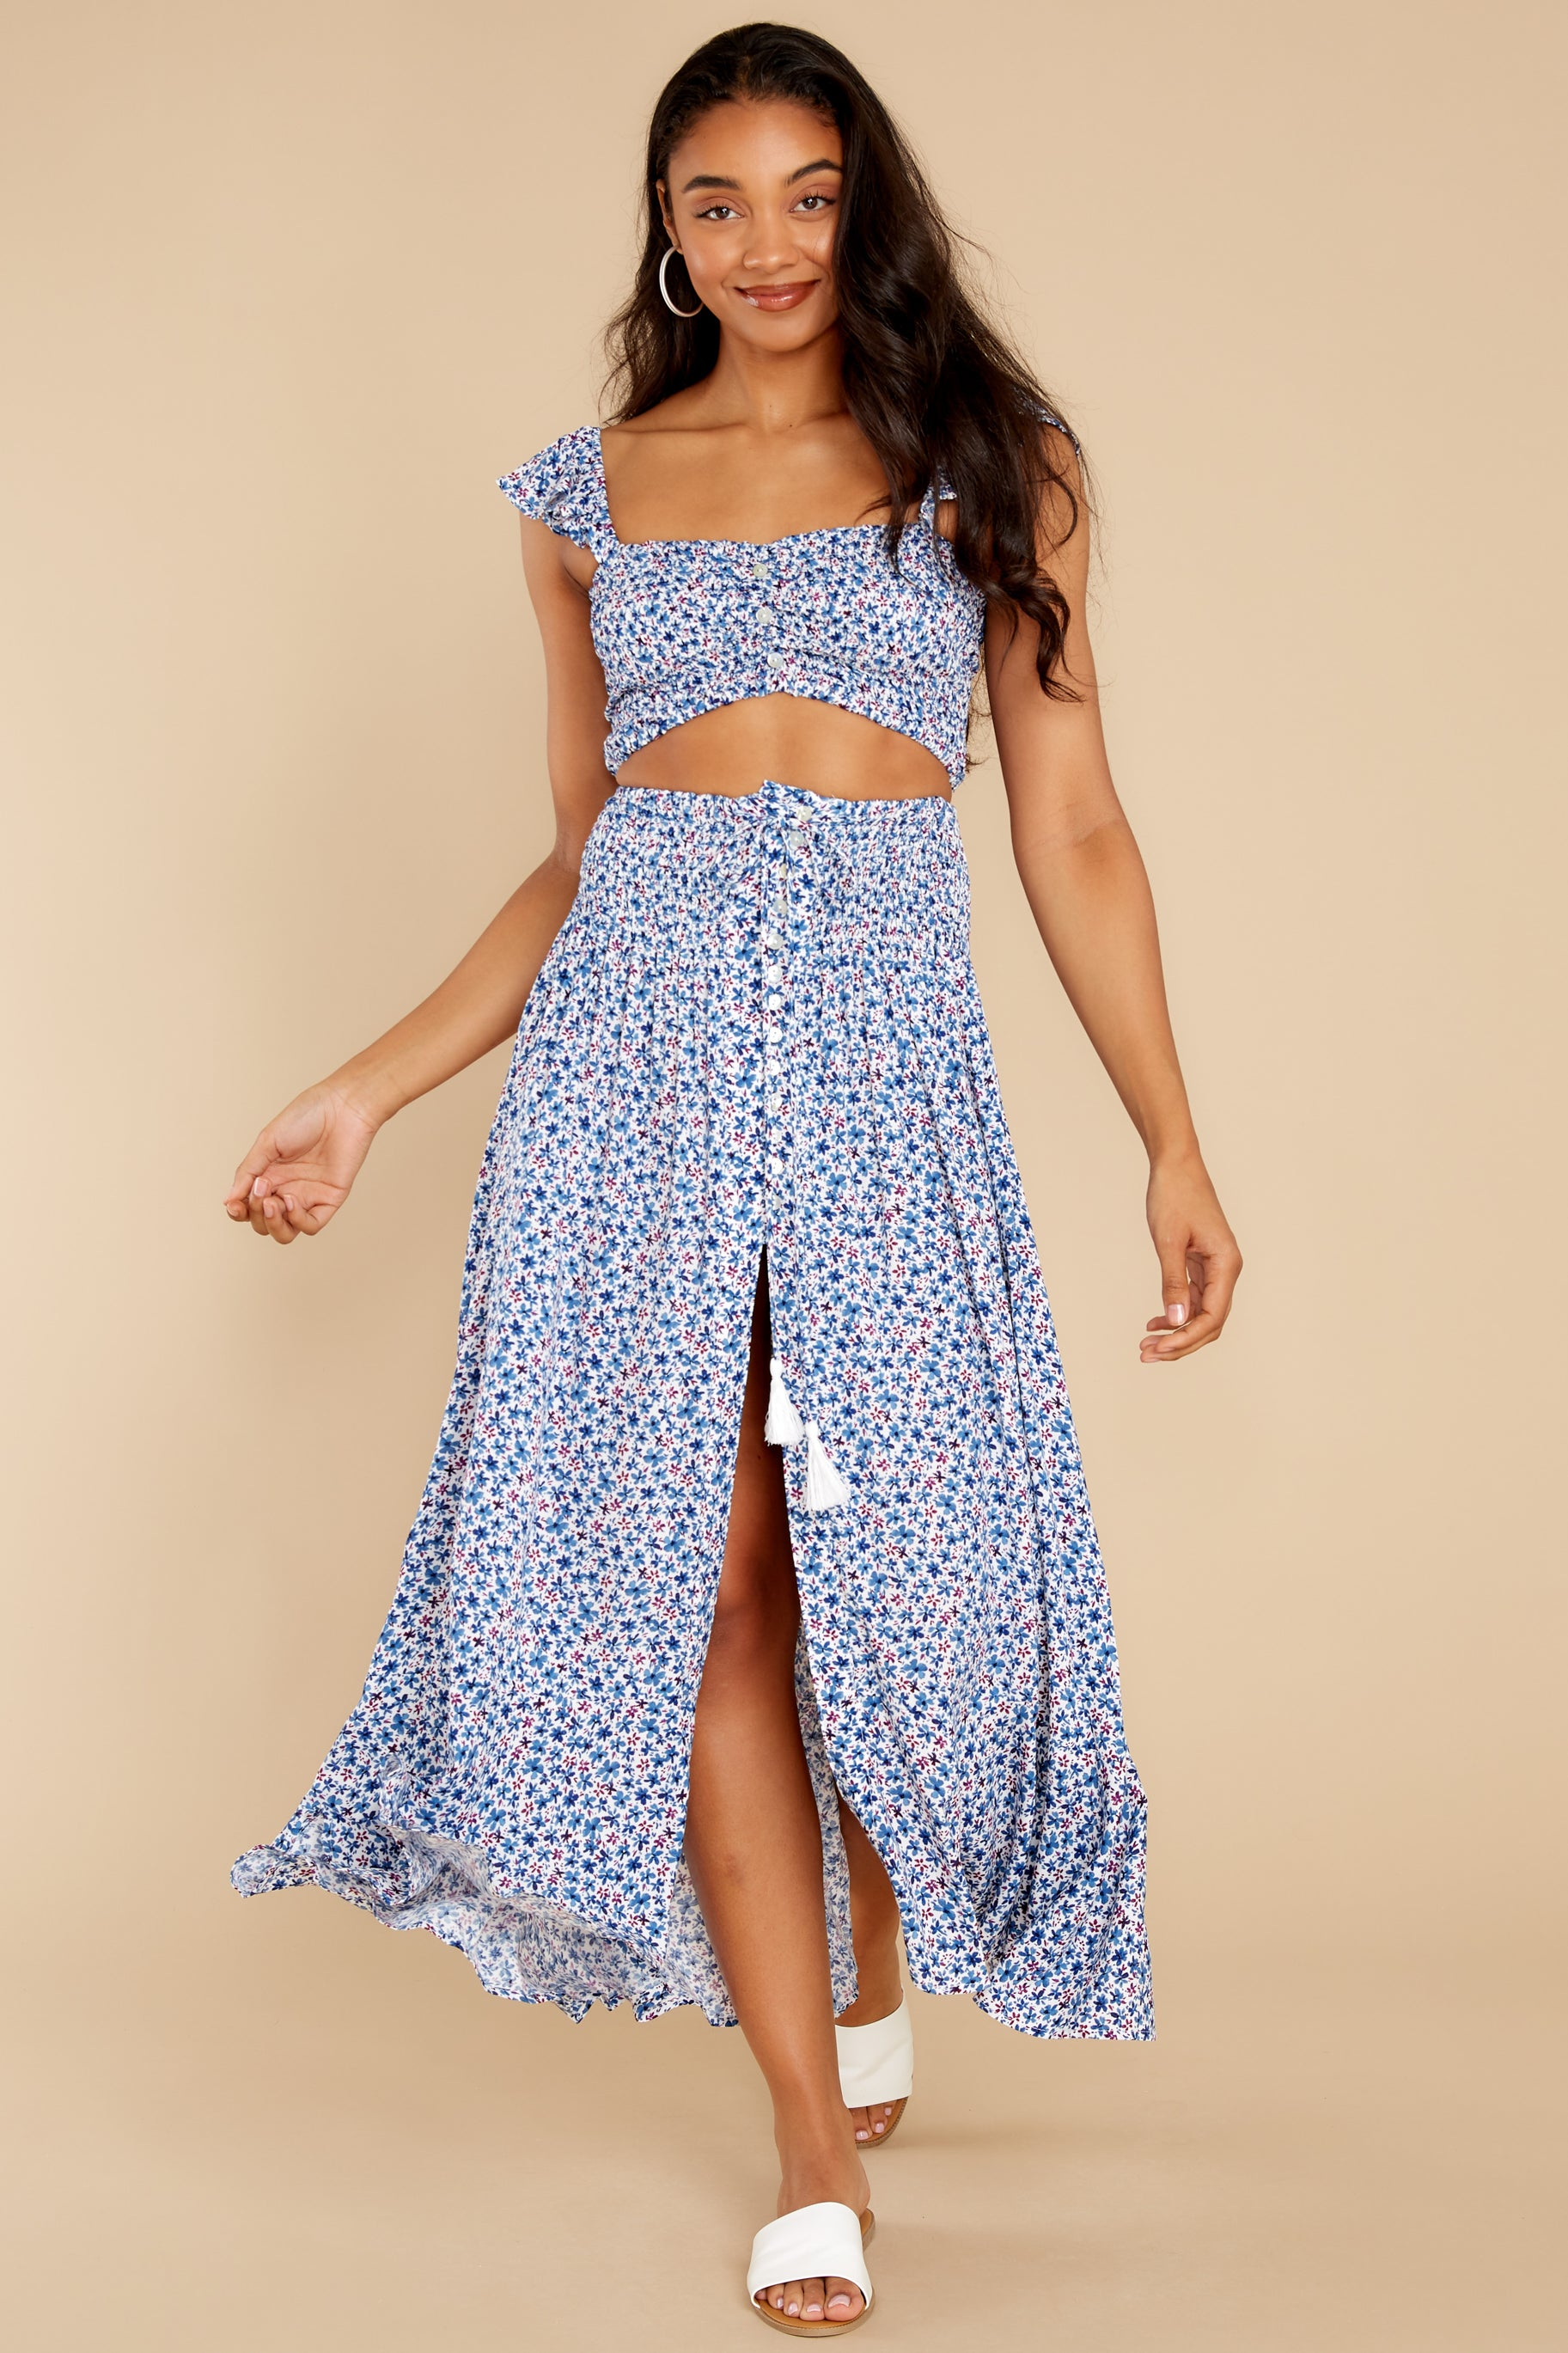 2 Lifting The Spirits Blue Floral Print Two Piece Set at reddress.com